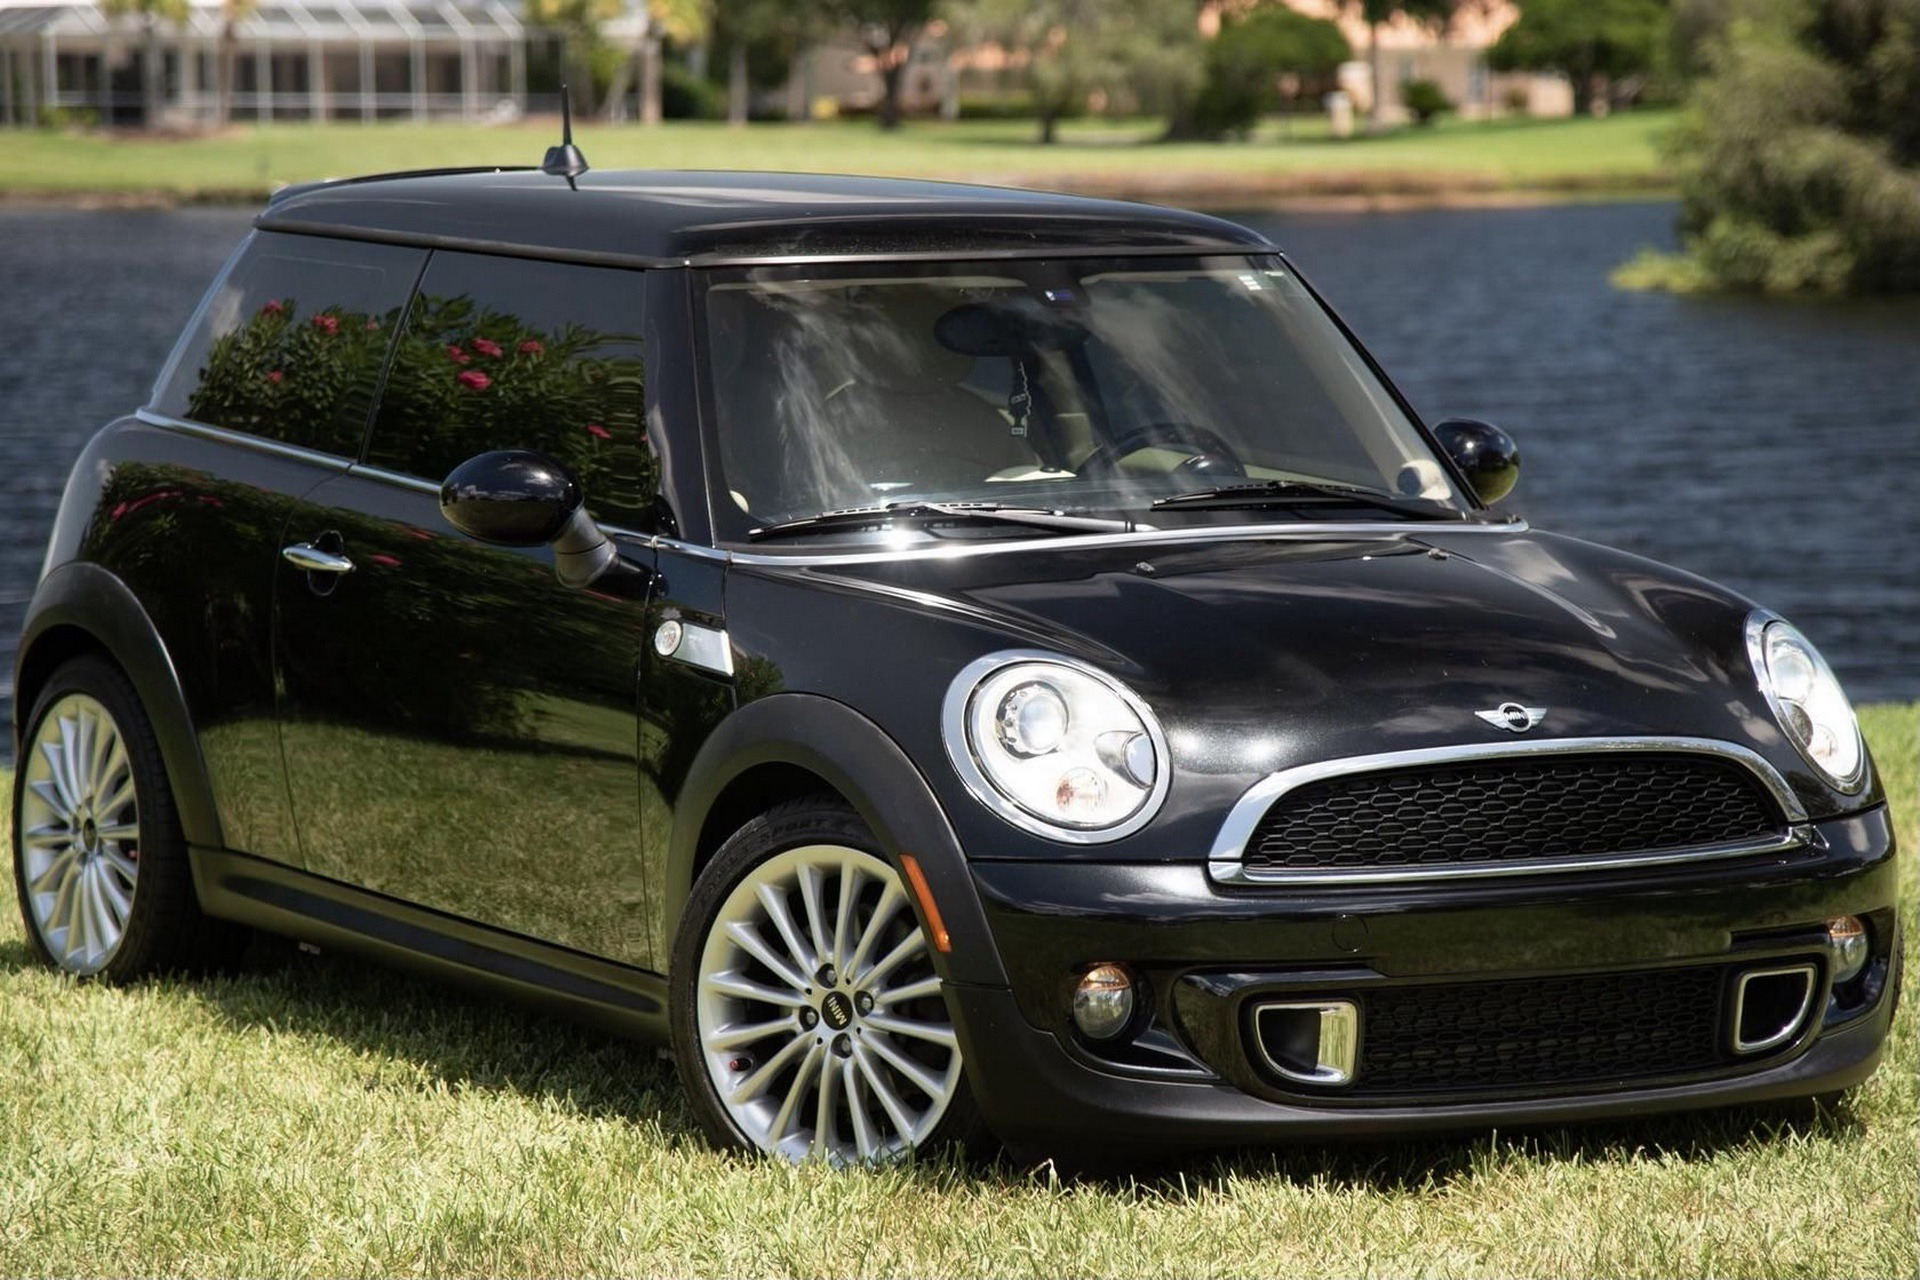 Mini_Cooper_S_Inspired_by_Goodwood-0038